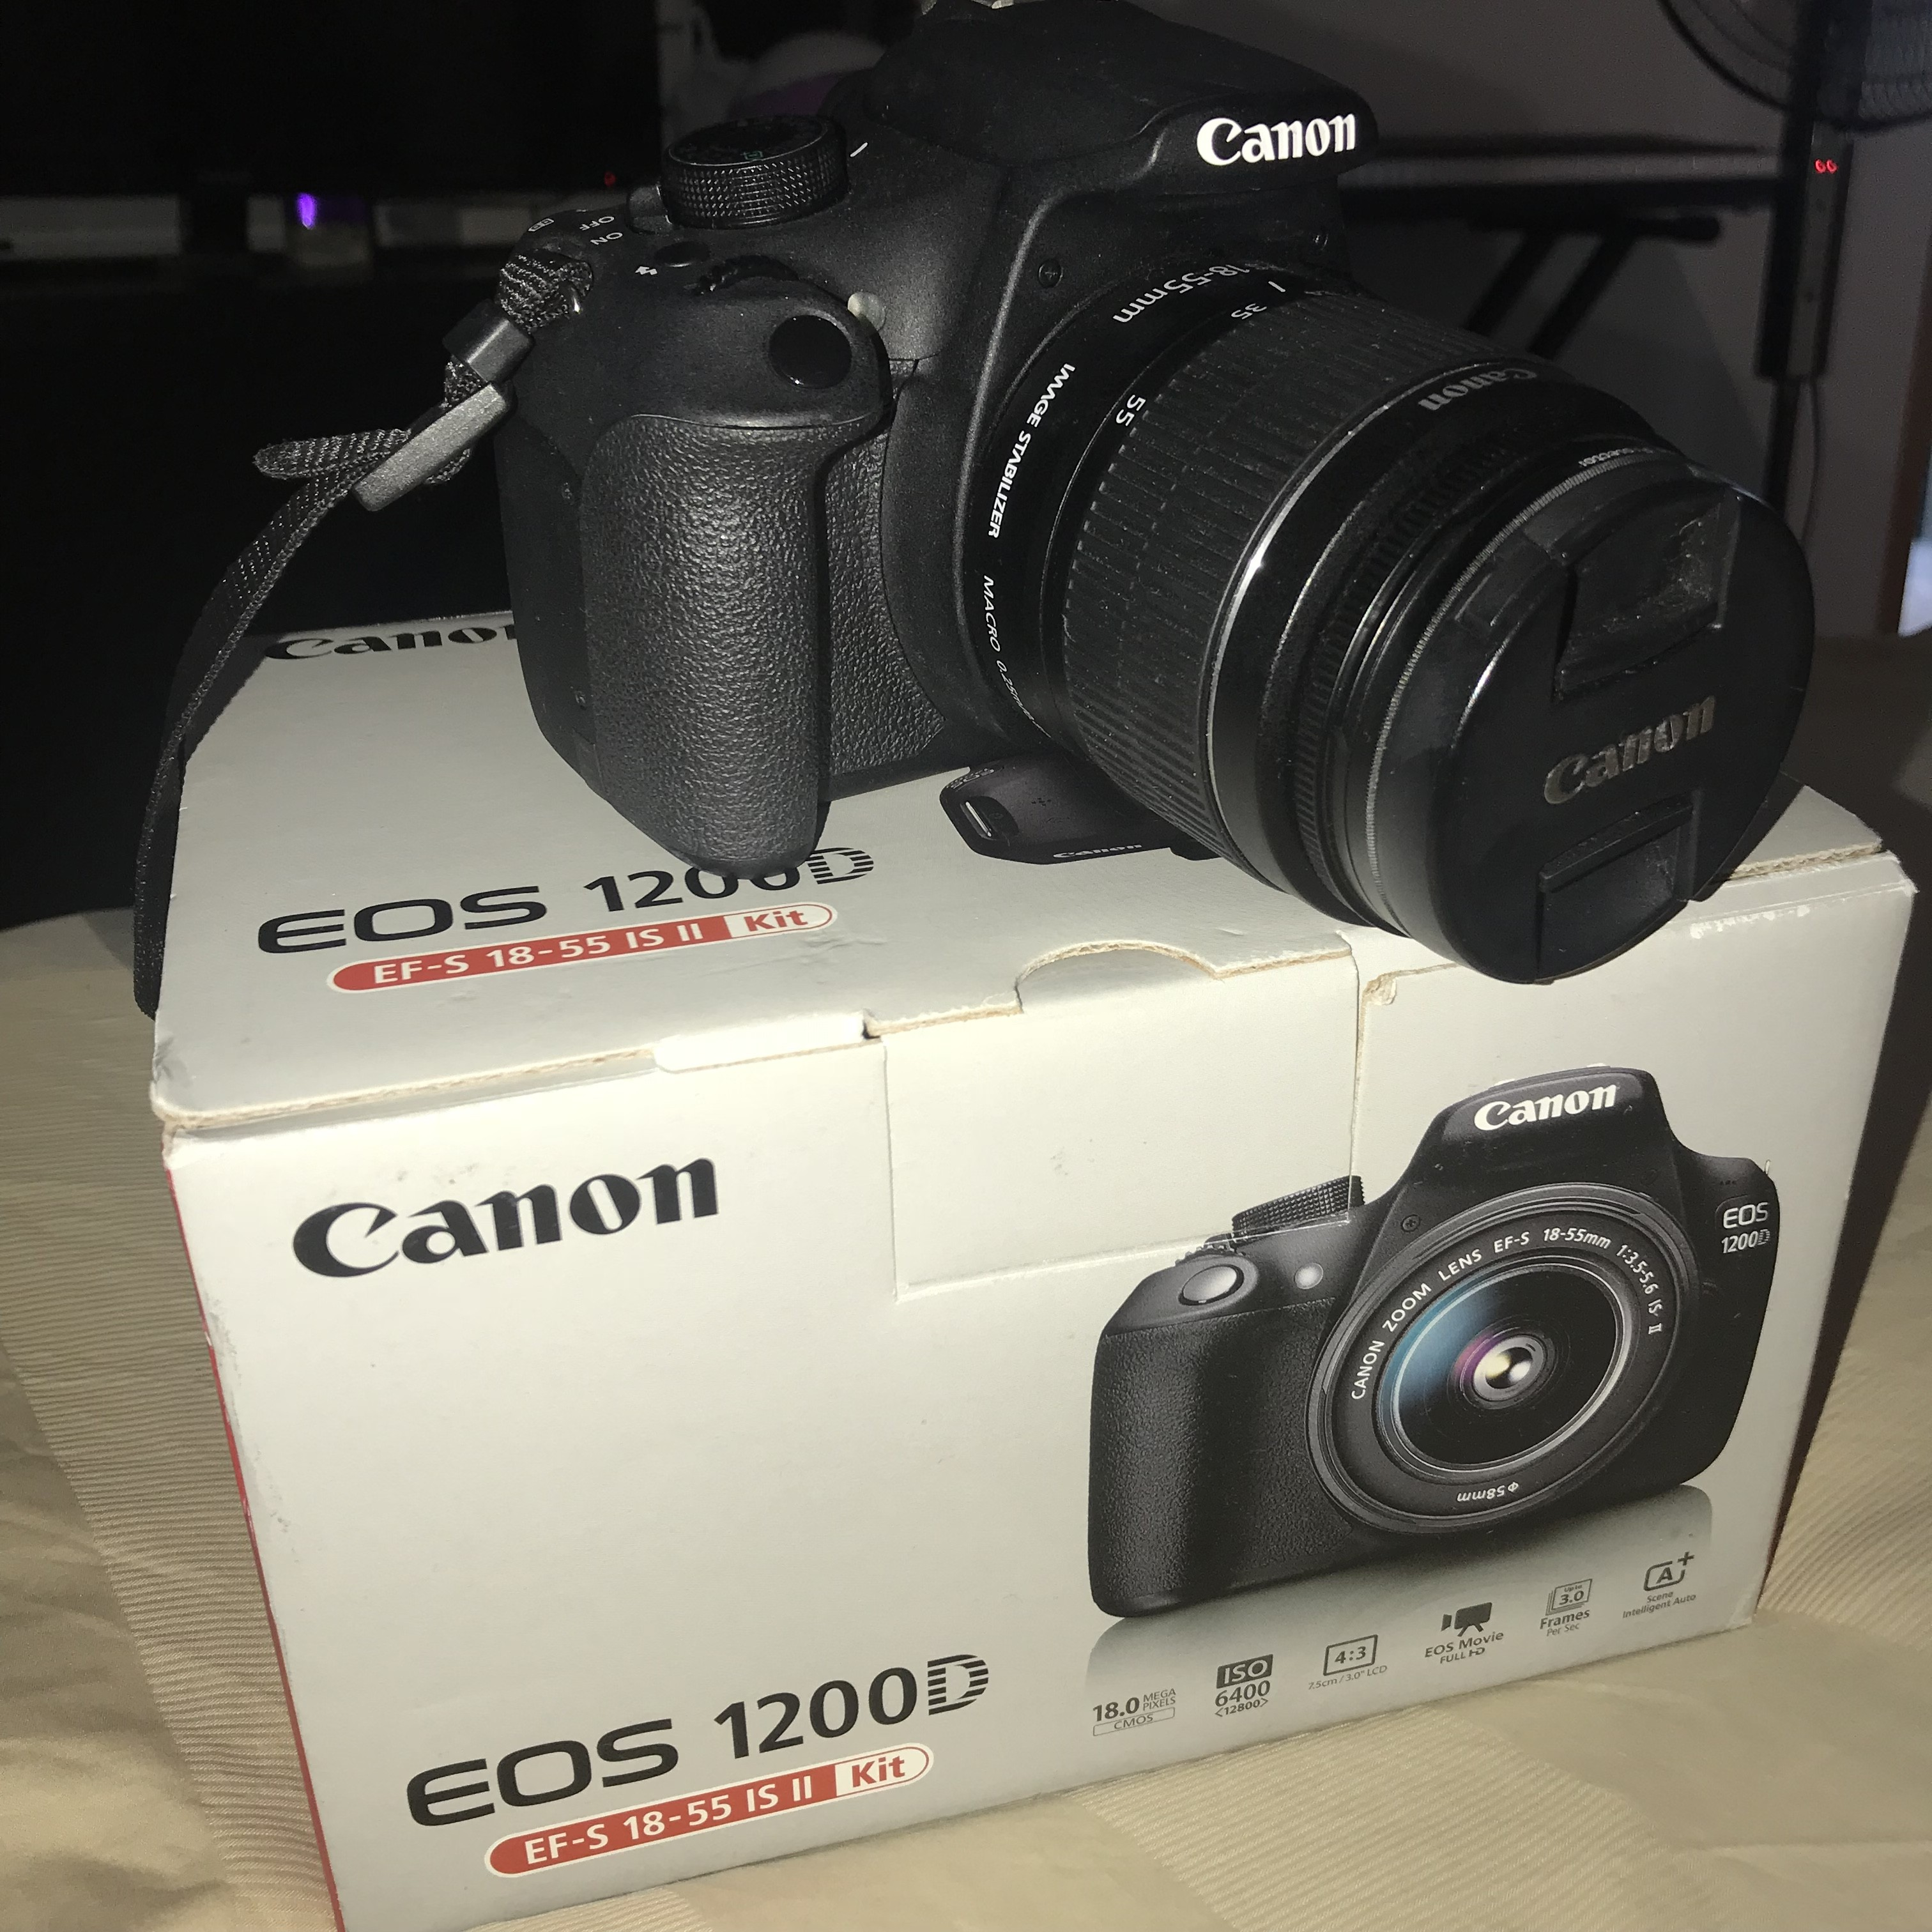 2nd hand Canon-EOS 1200D DSLR on sale